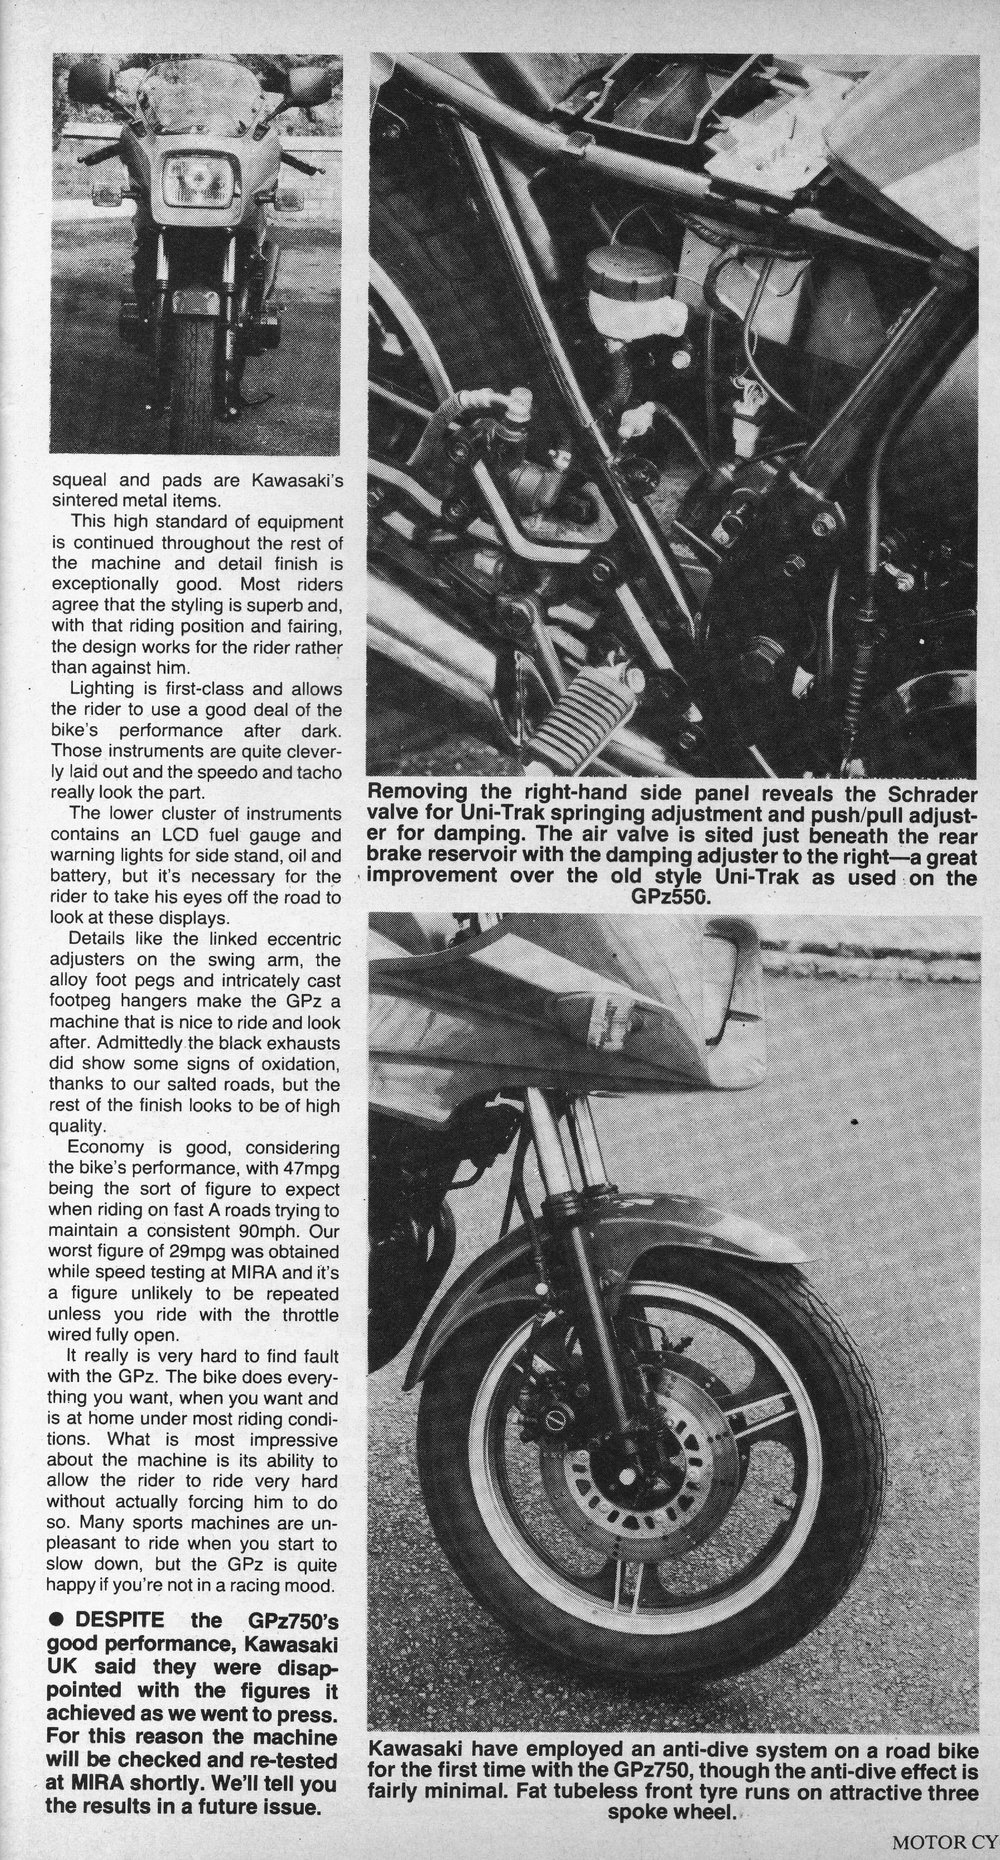 1983 Kawasaki GPz750 road test.4.jpg